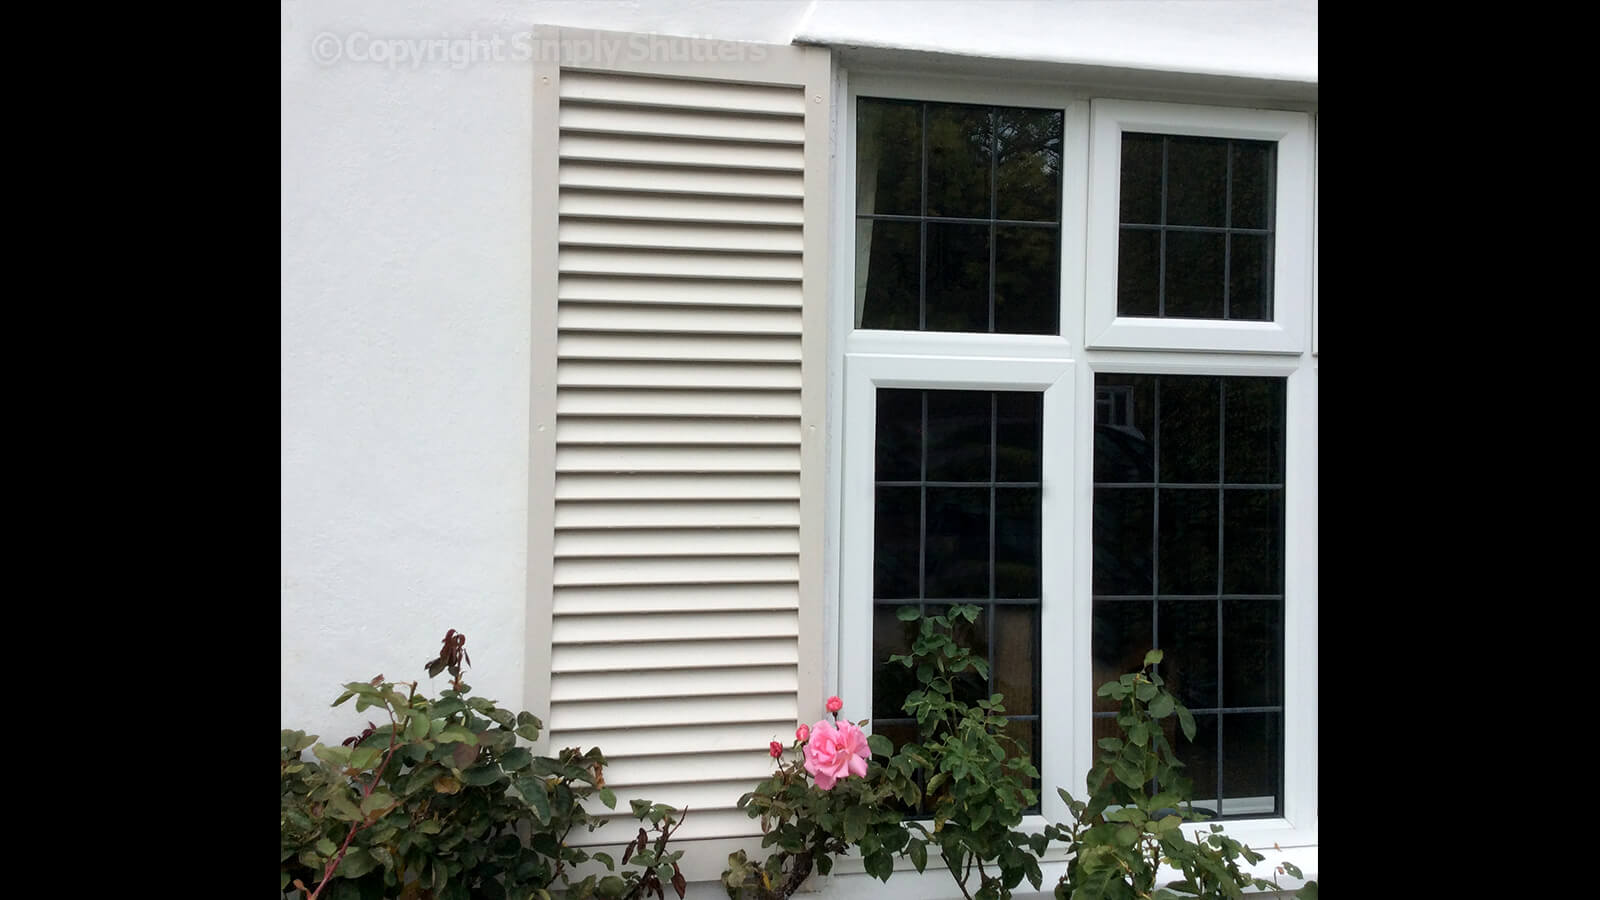 Town & Country Redwood - The Kensington (shutters painted by customer)